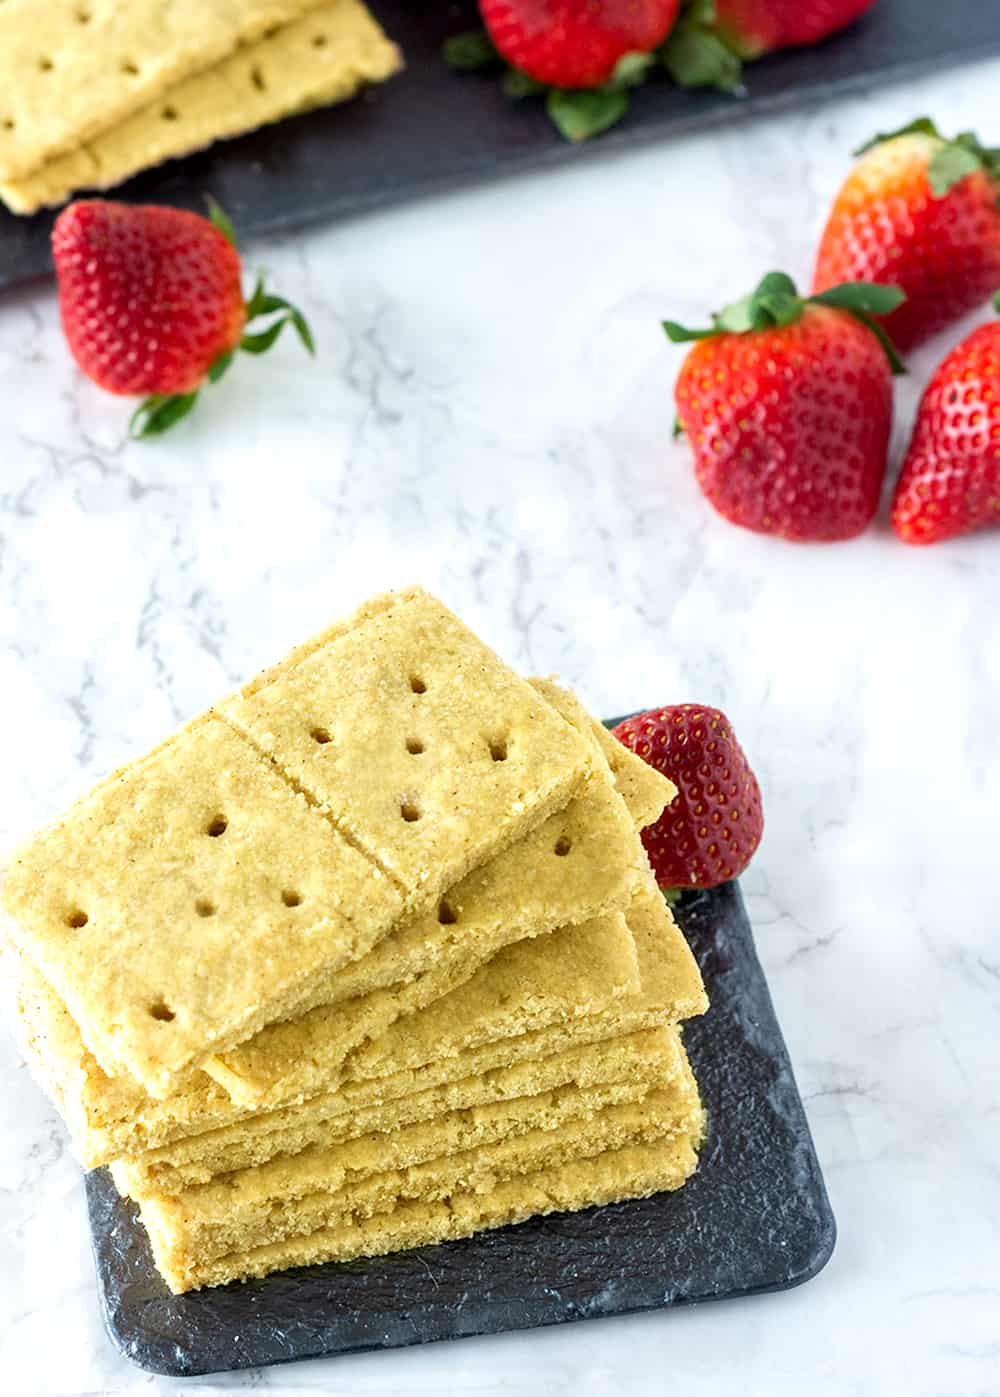 a stack of gluten-free vegan Graham cracker placed next to some strawberries